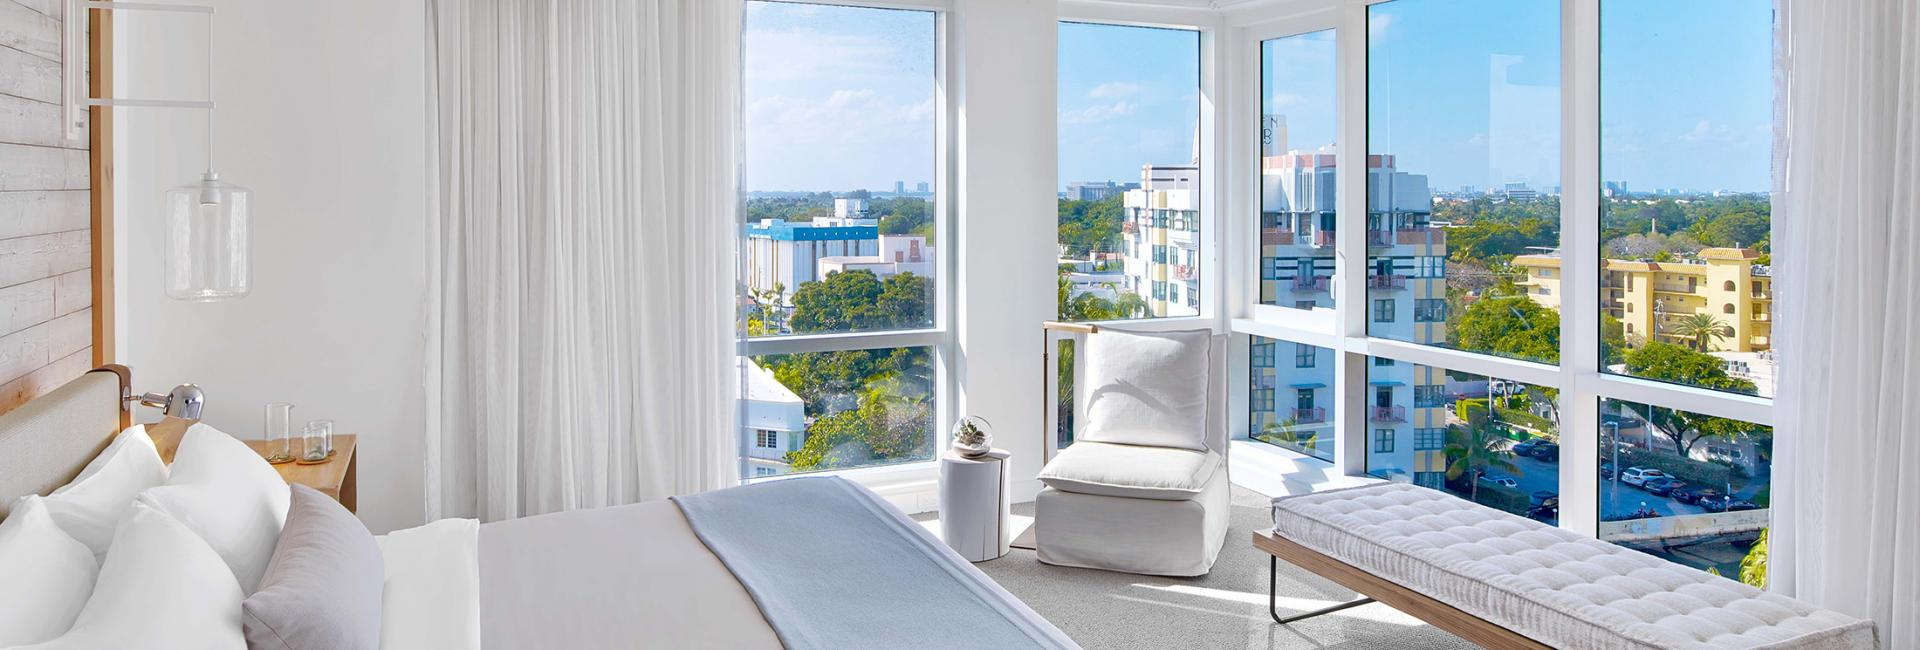 1 Bedroom suite with city view